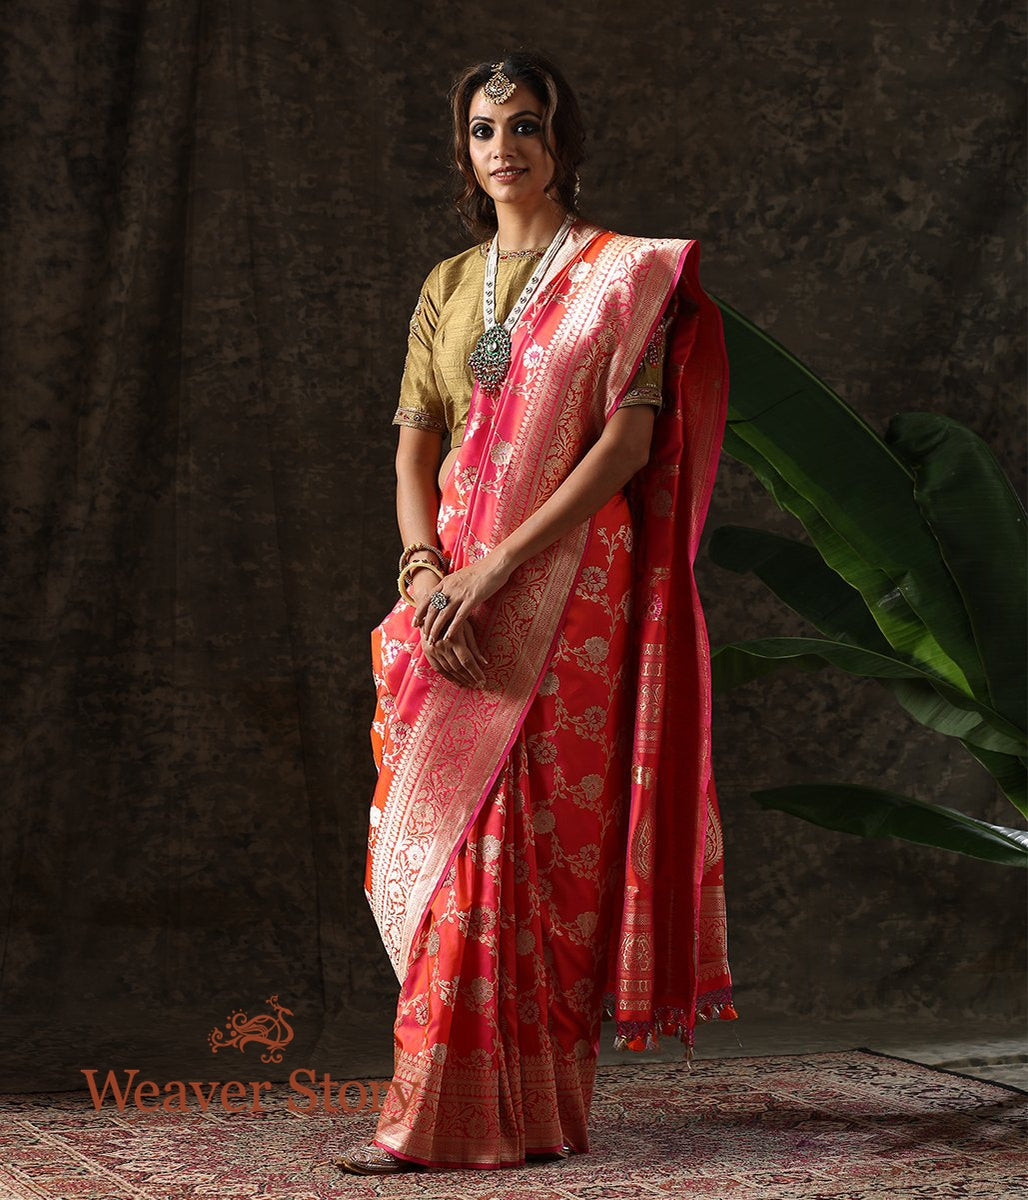 Handwoven Pink and Orange Dual Tone Banarasi Jangla with Meenakari